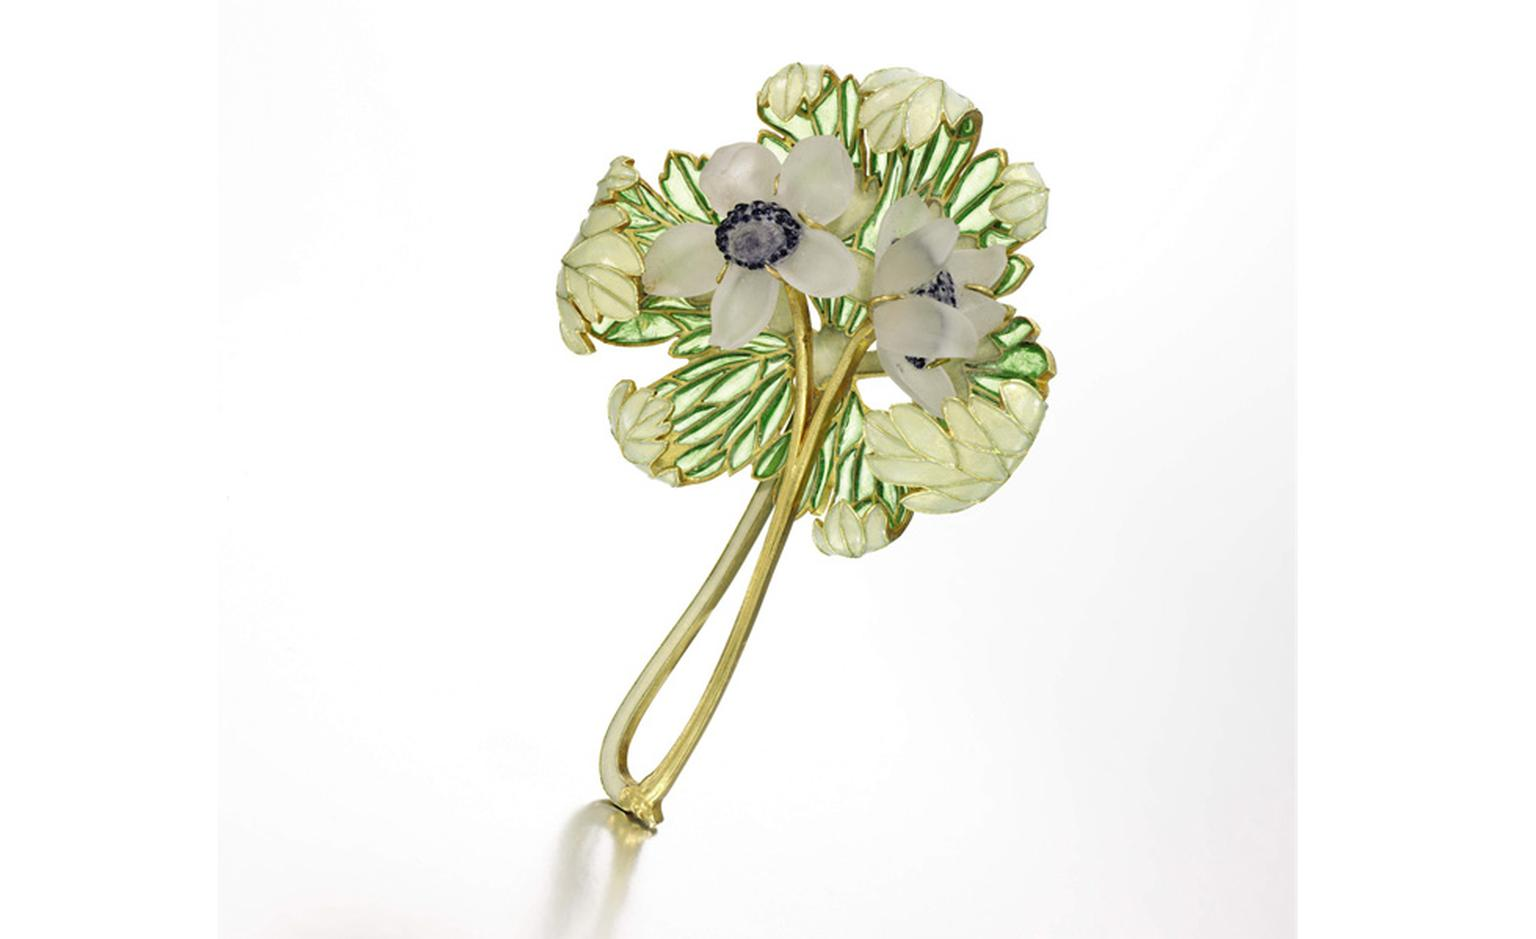 Lot 54. Property of a Lady. Gold and enamel brooch, René Lalique. Circa 1900. Estimate £10,000-£15,000